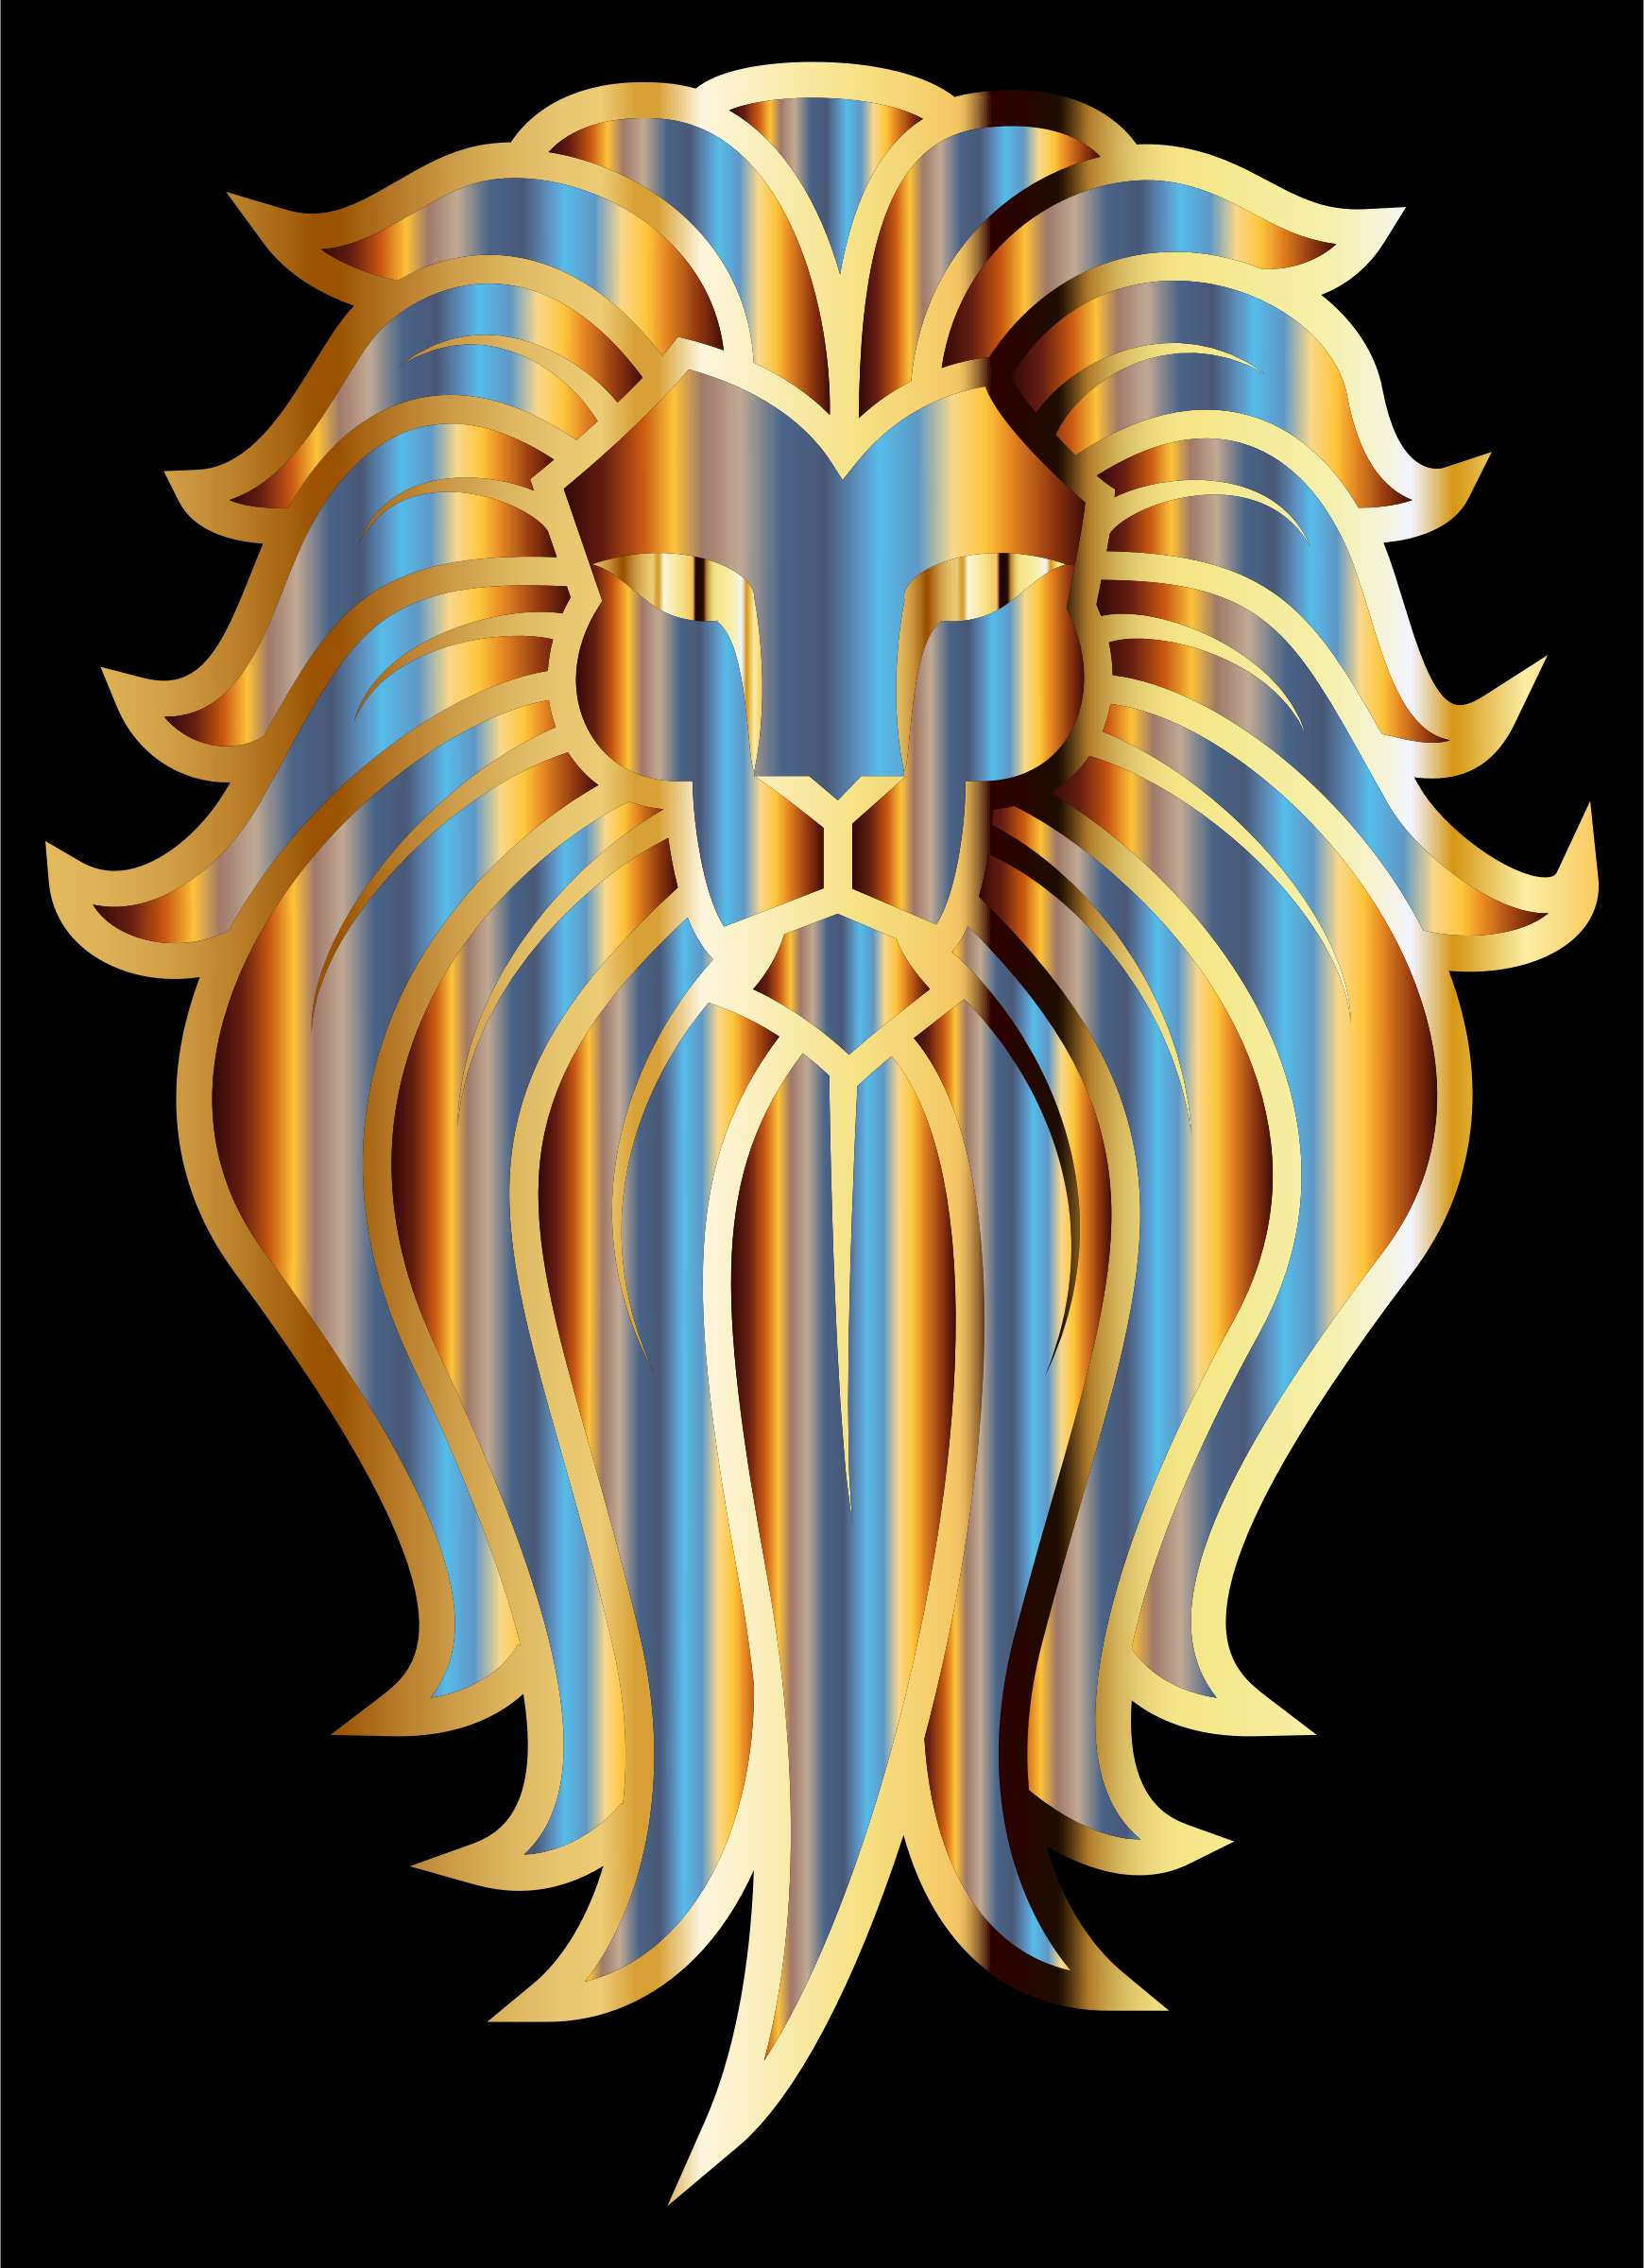 Chromatic Lion Face Tattoo by GDJ